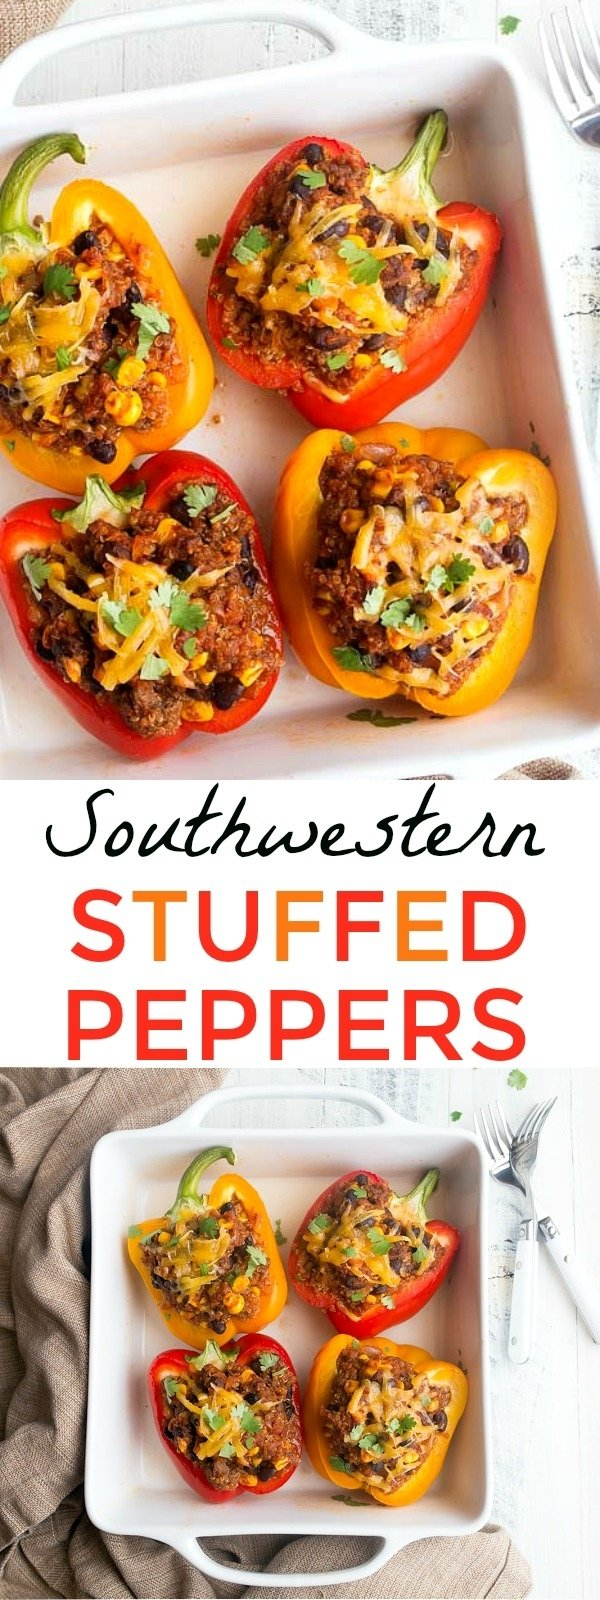 10 Fashionable Ideas For Dinner For Two southwestern stuffed peppers for two dinners for two